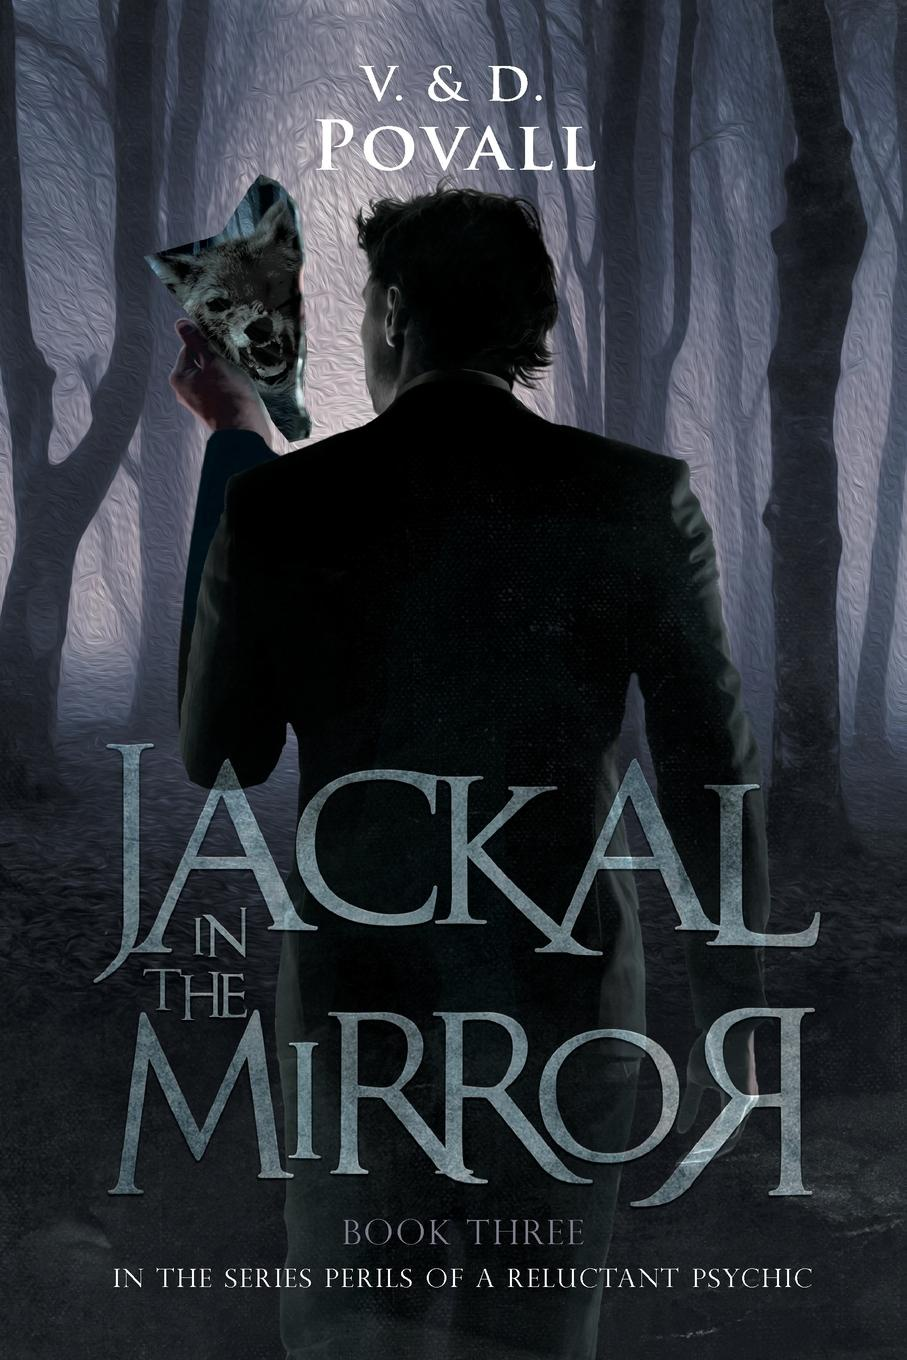 V. & D. Povall Jackal in the Mirror. Book Three in the Series - Perils of a Reluctant Psychic the day of the jackal